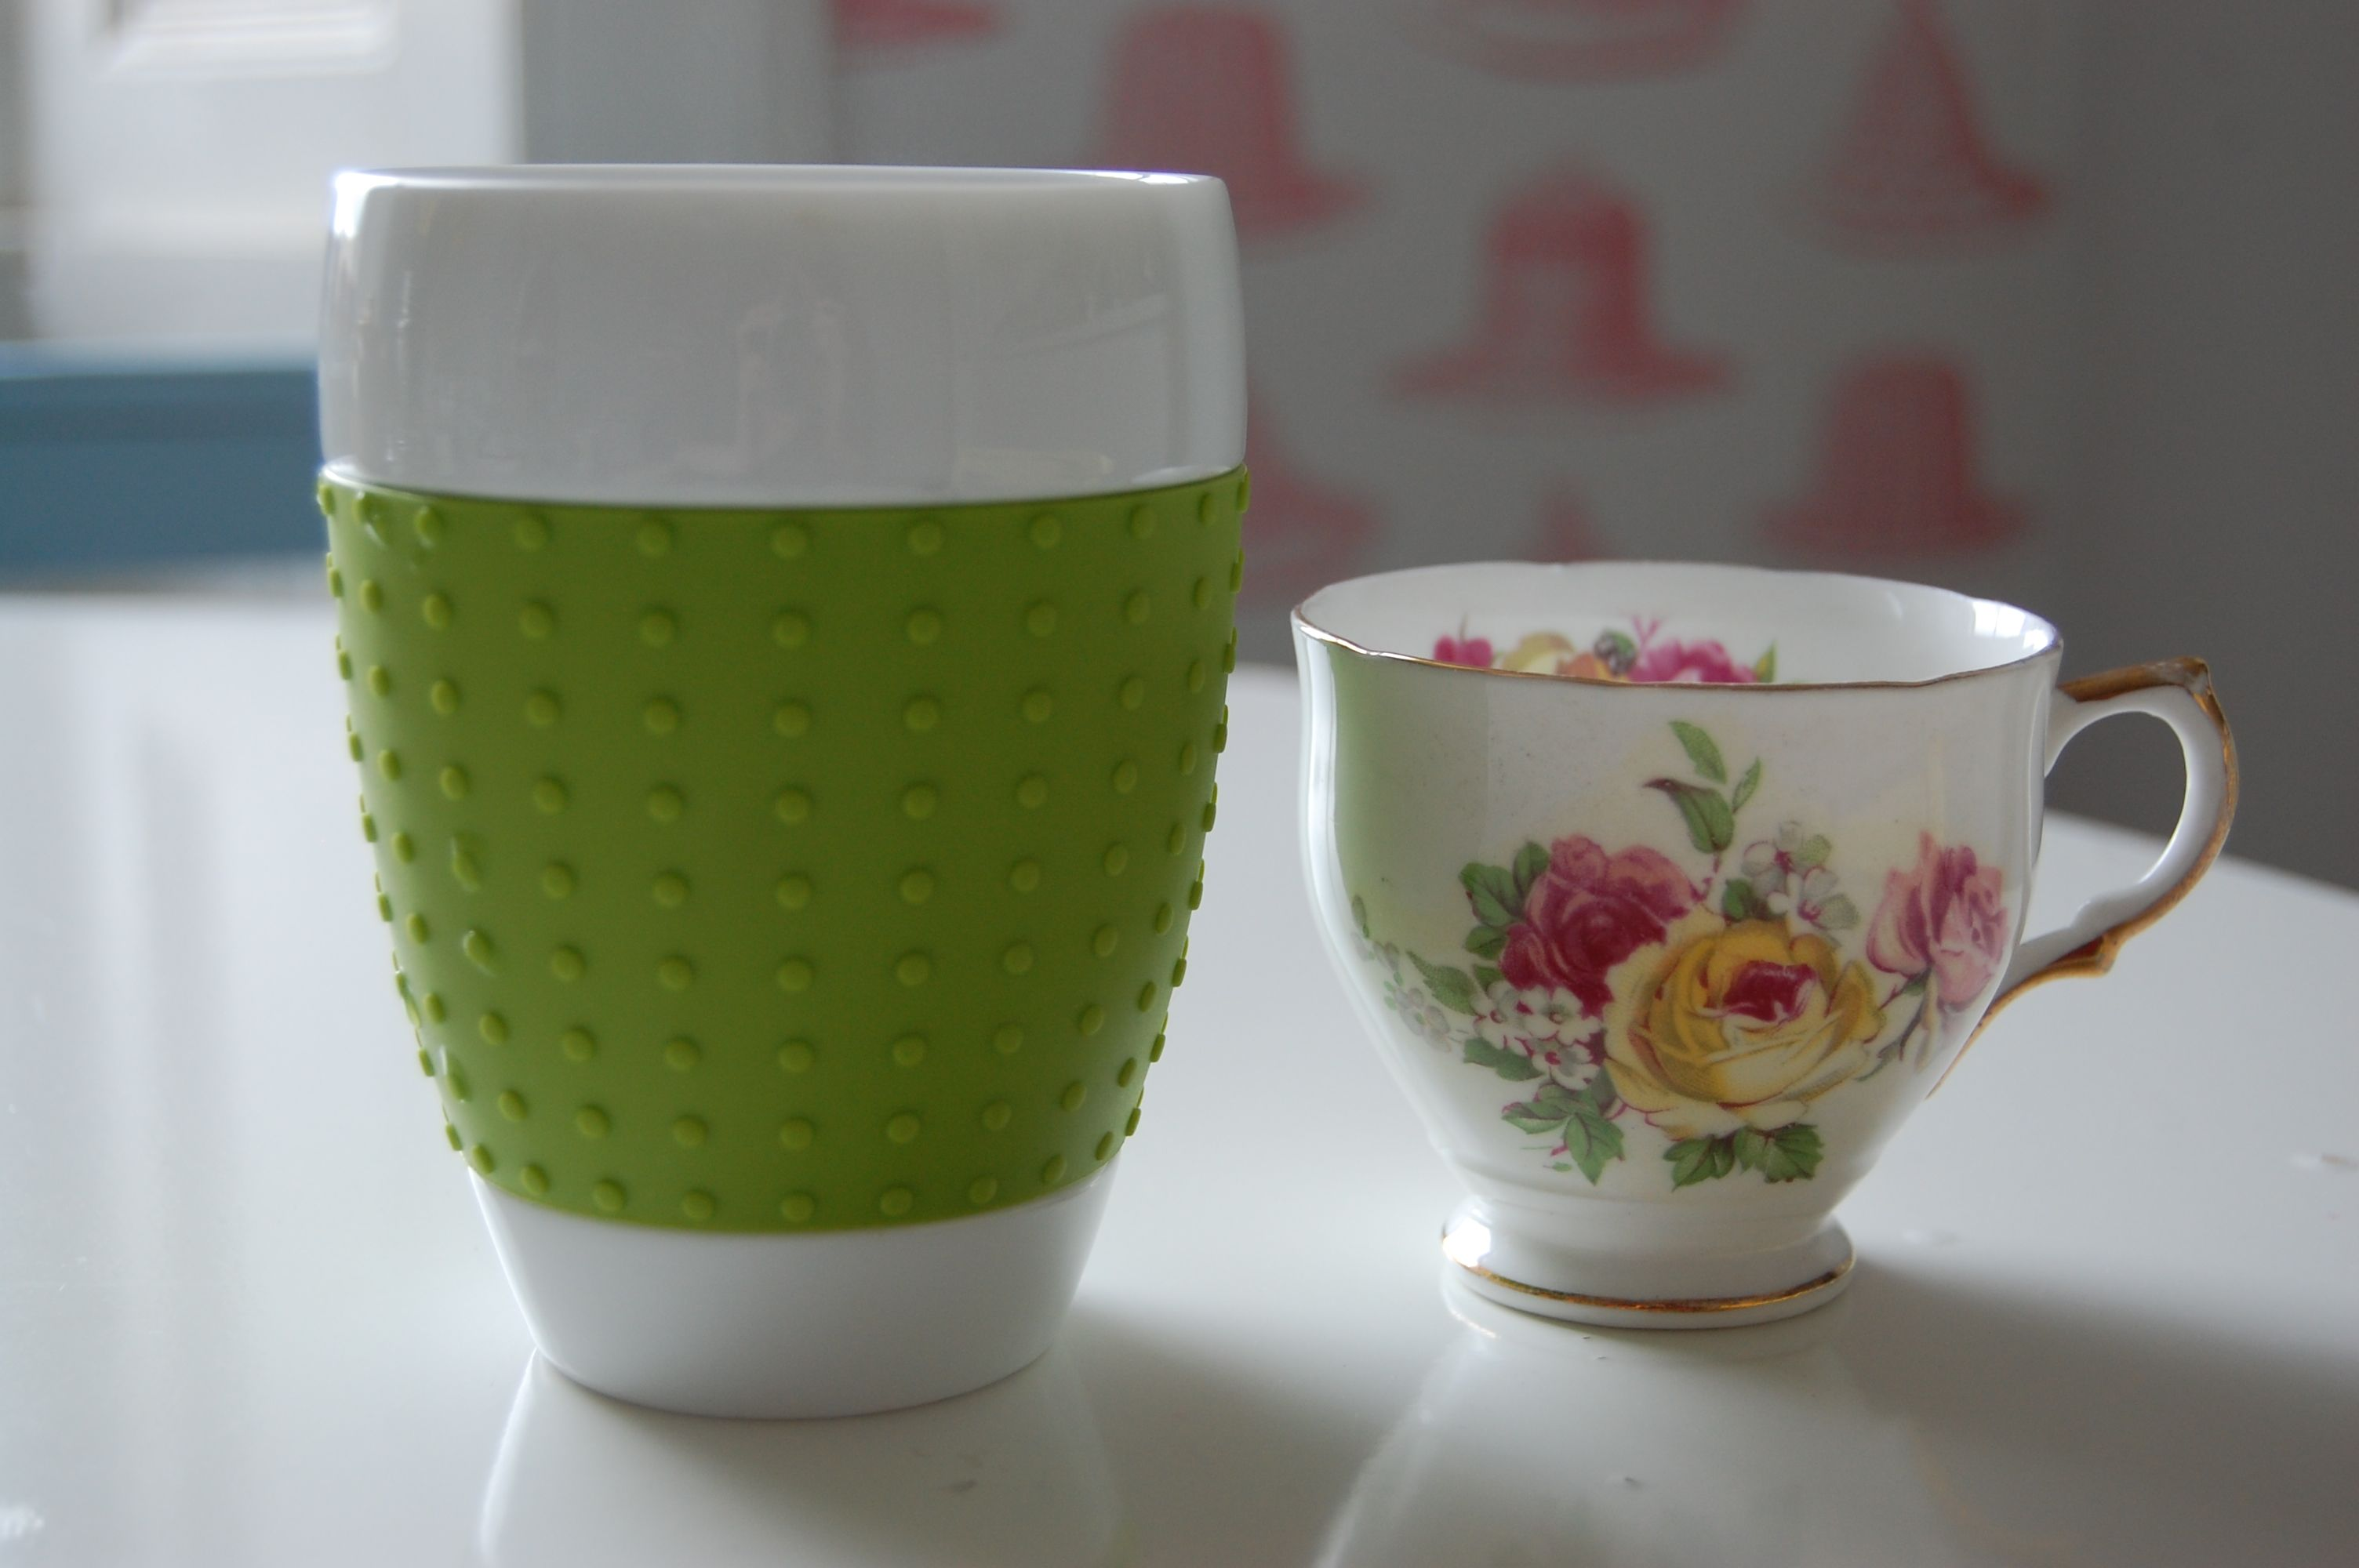 us cups cp Tea cosy (and cupcake) love